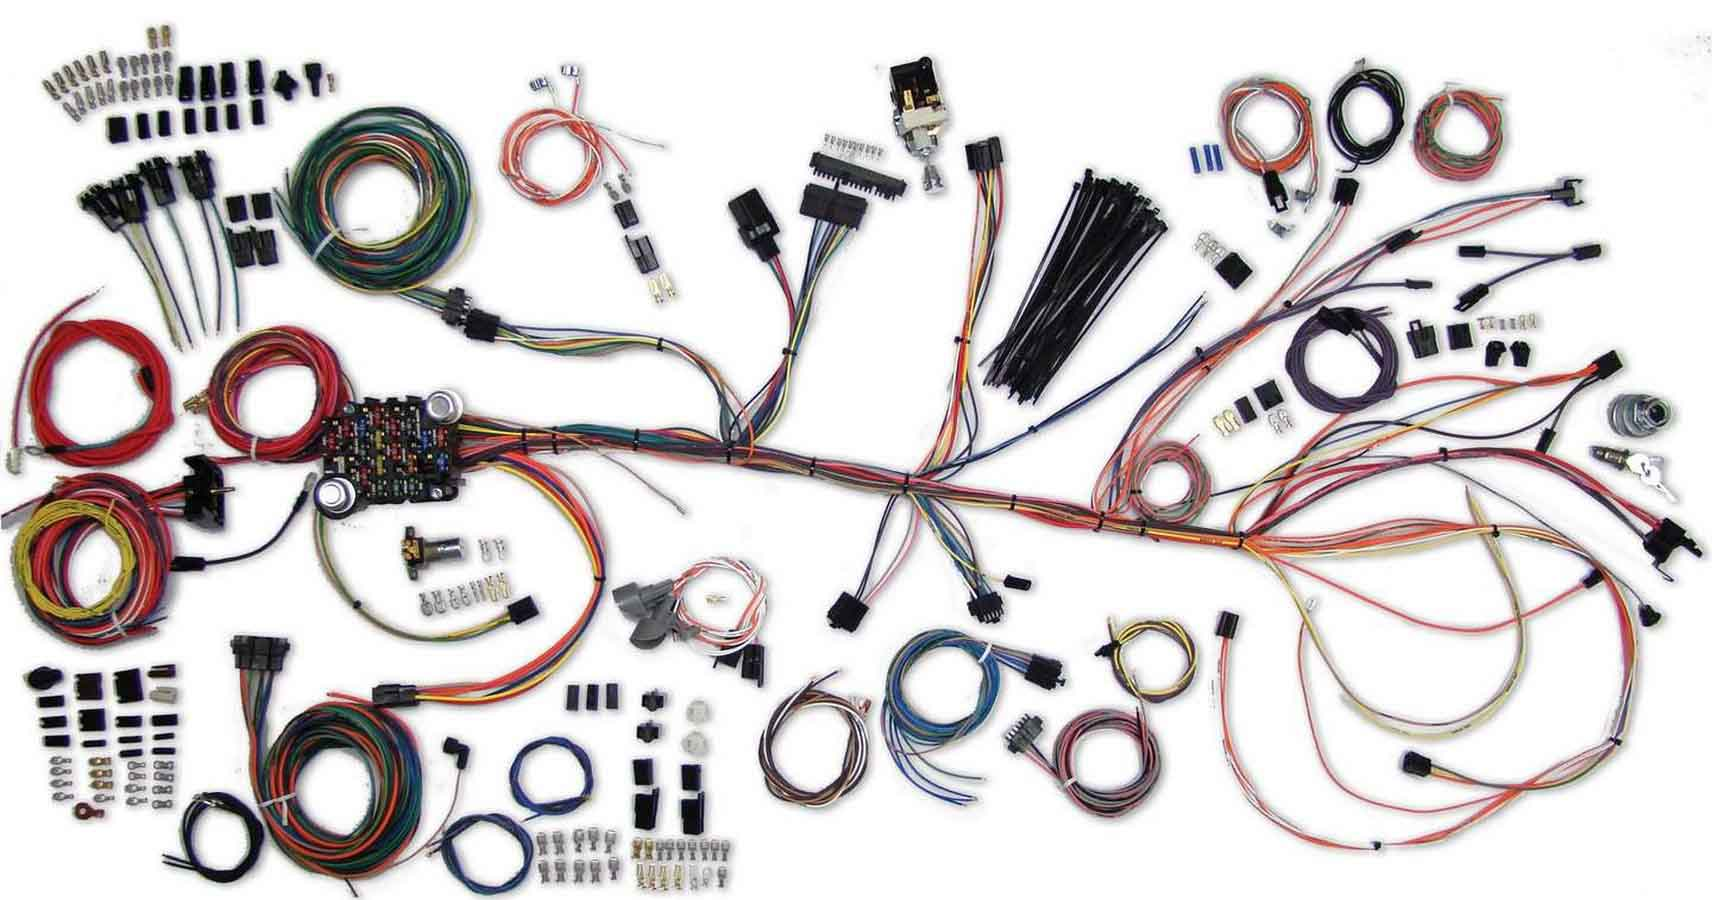 Grand Prix Auto Bully Dog Wiring Harness 64 67 Chevelle Wire System